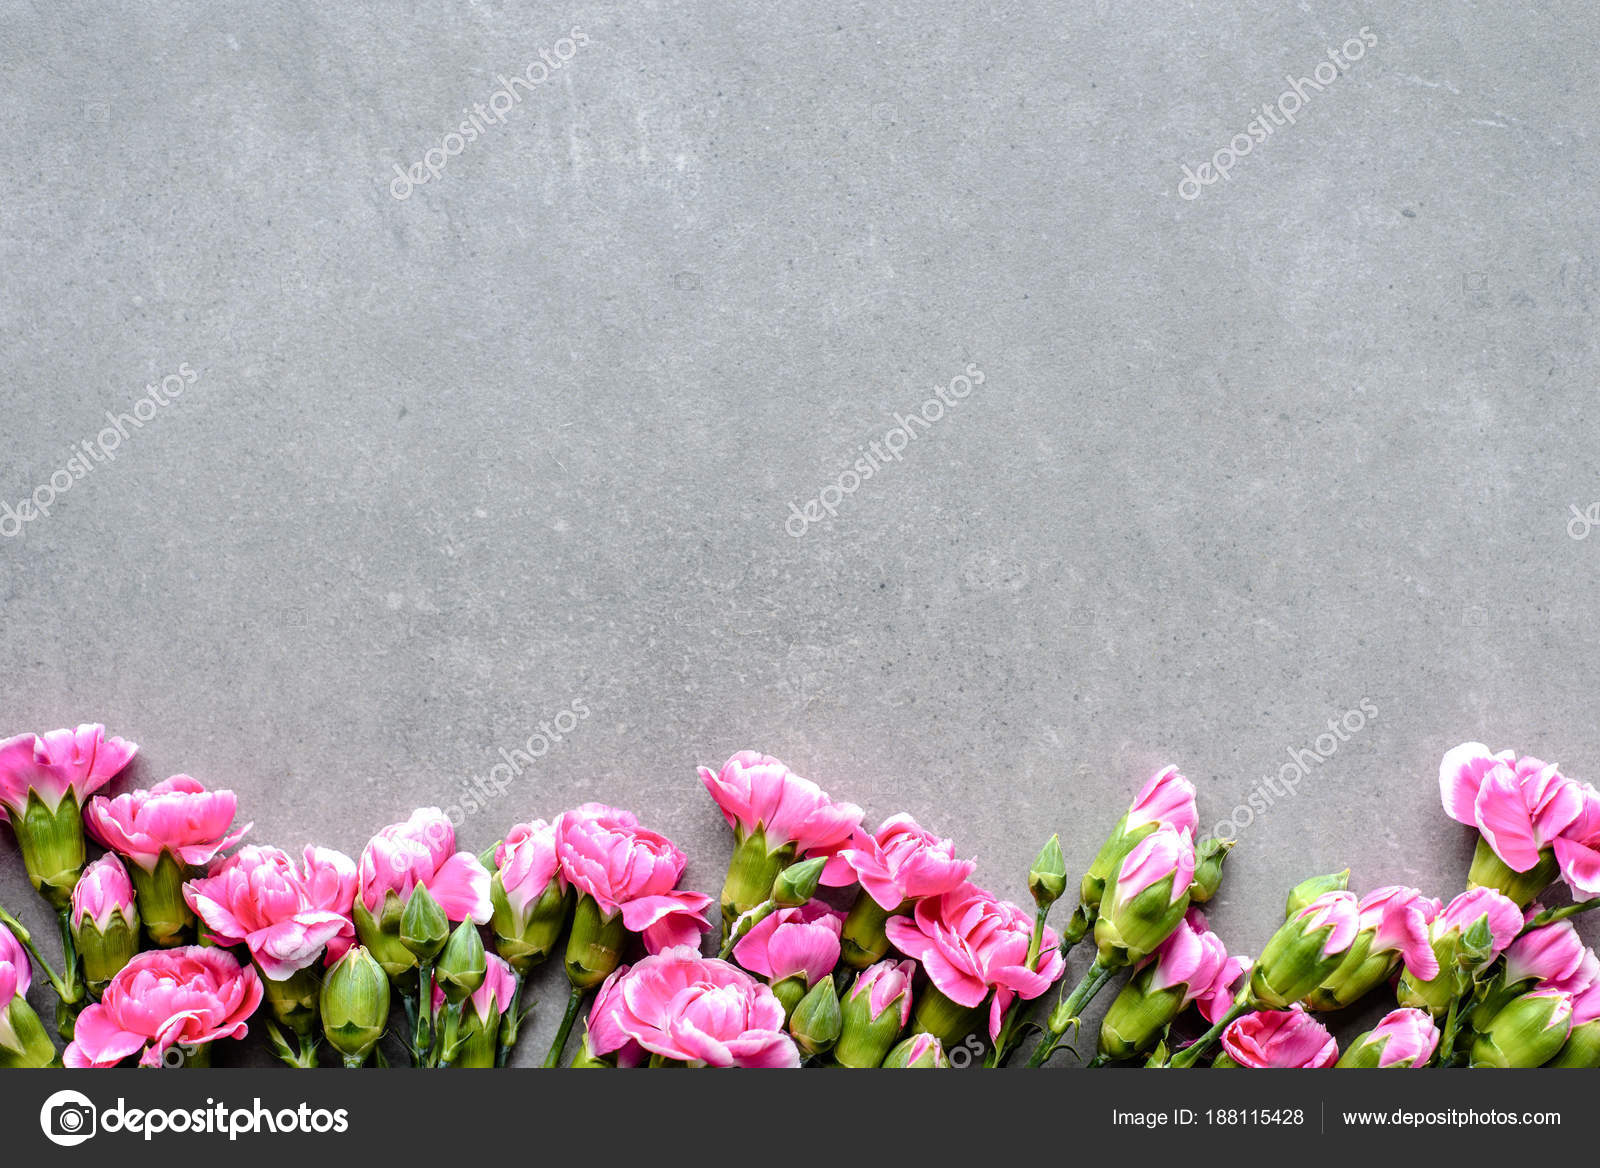 Floral border with spring flowers on gray background flat lay top floral border with spring flowers on gray background flat lay top view stock mightylinksfo